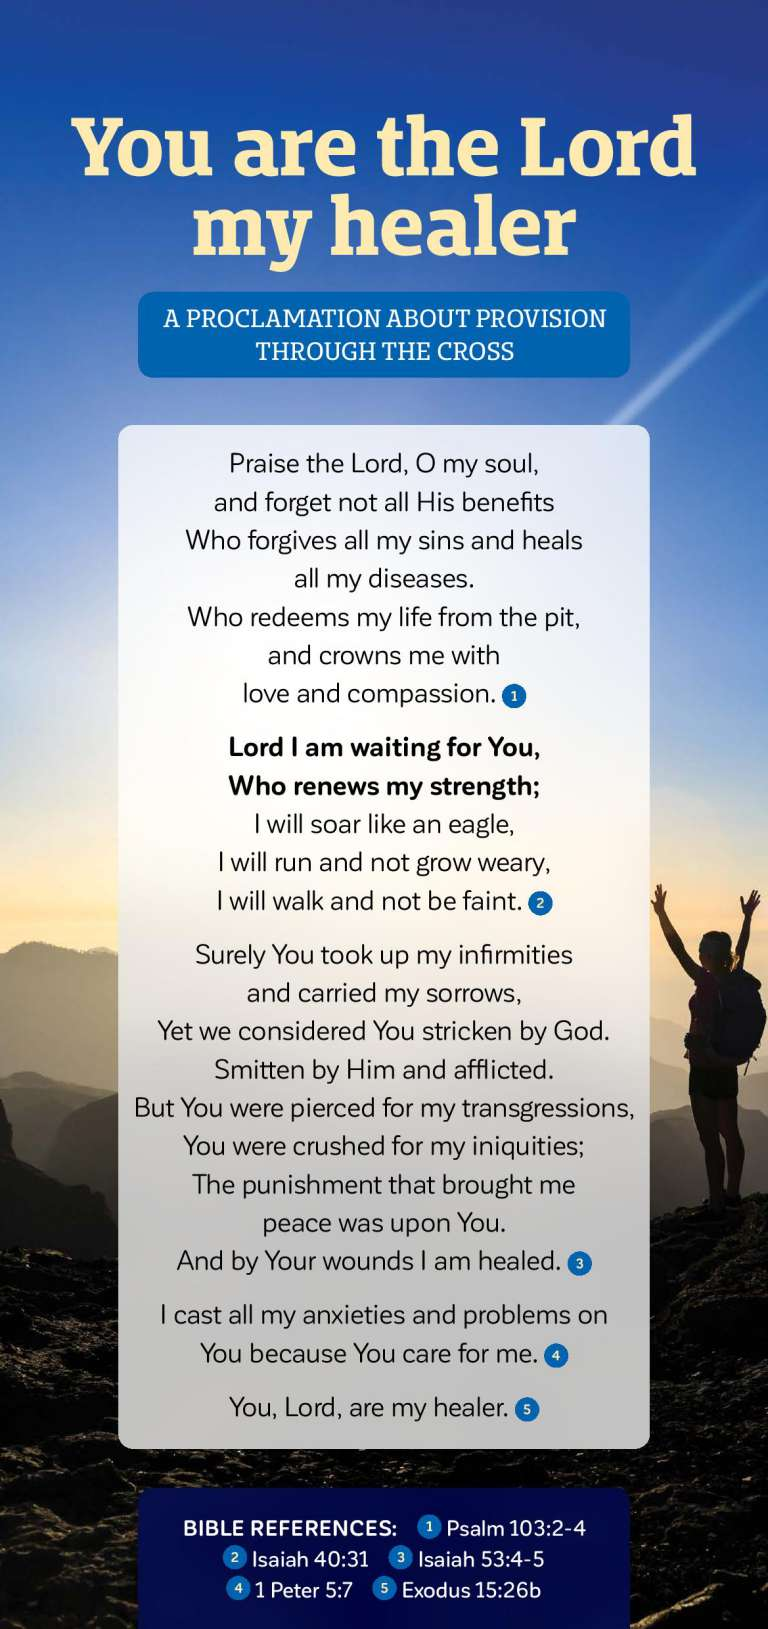 Proclamation - The Lord my Healer